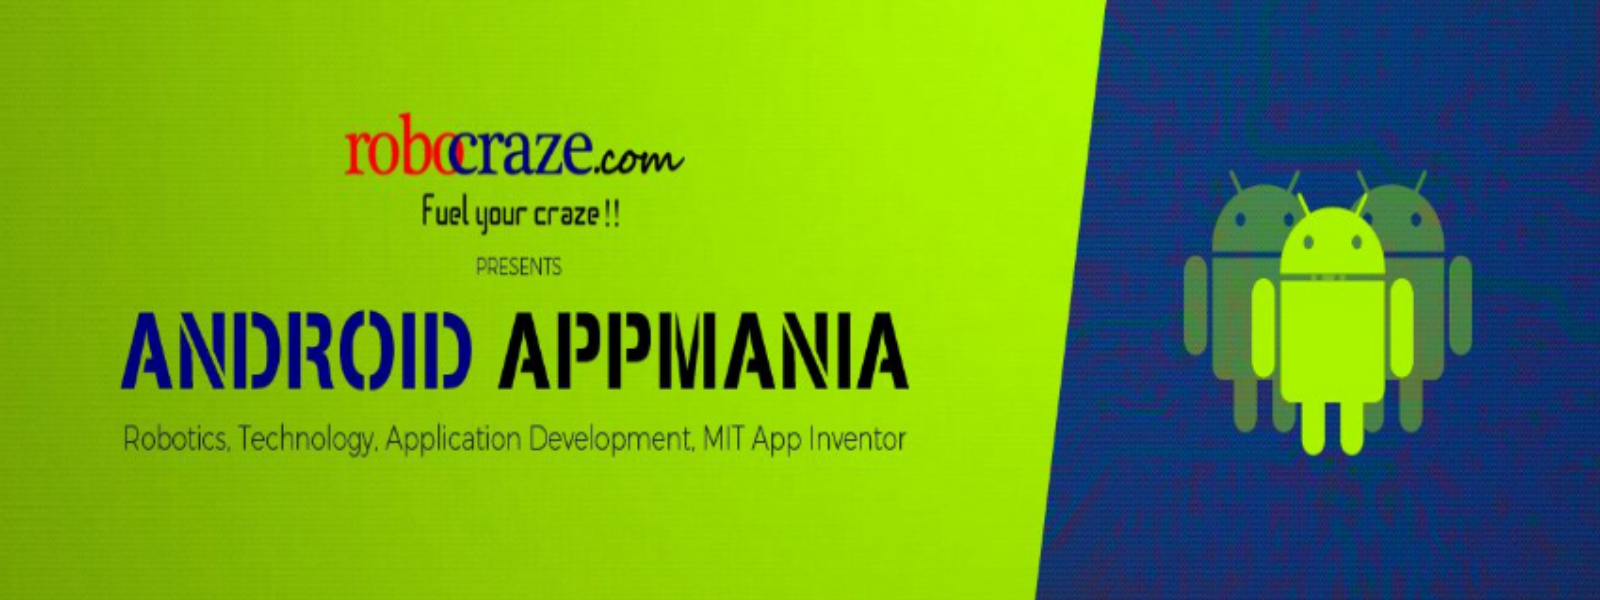 Android Appmania